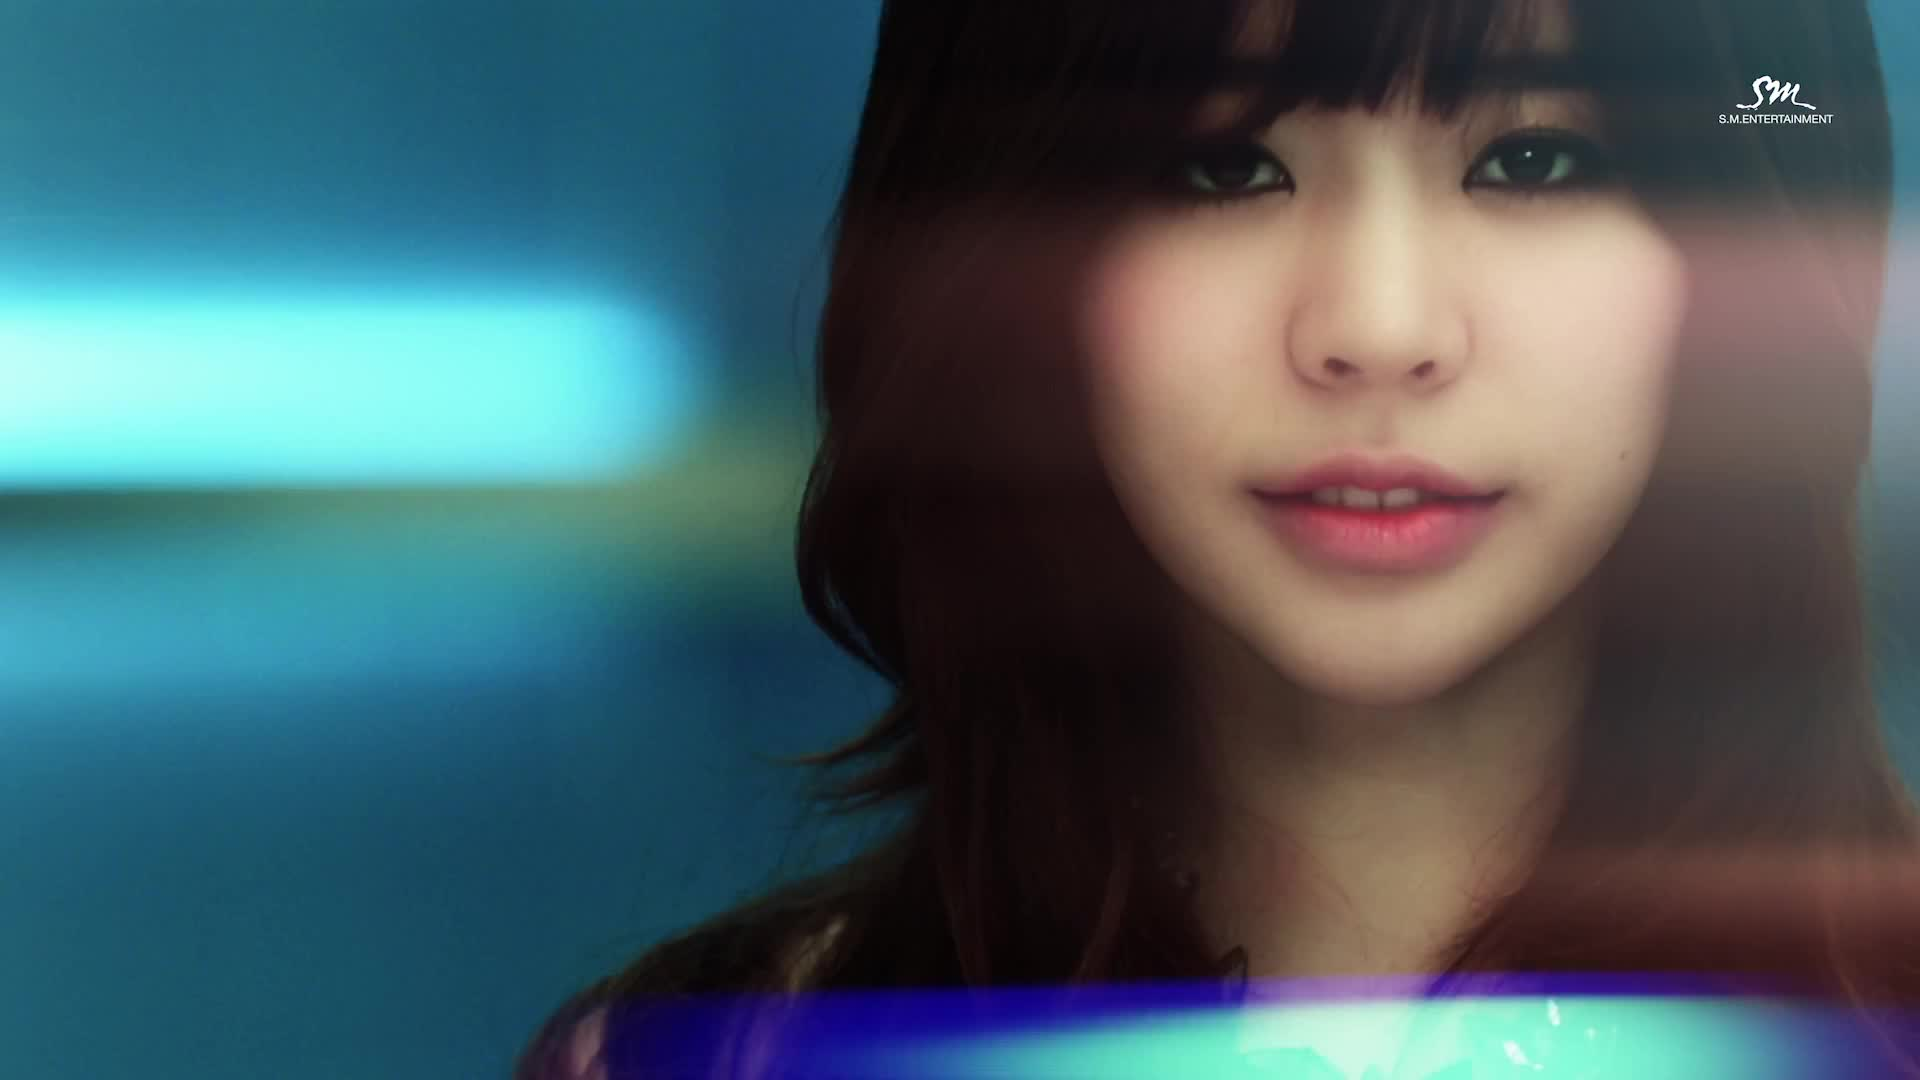 Sunny mr mr screencap - Girls Generation/SNSD Photo ...